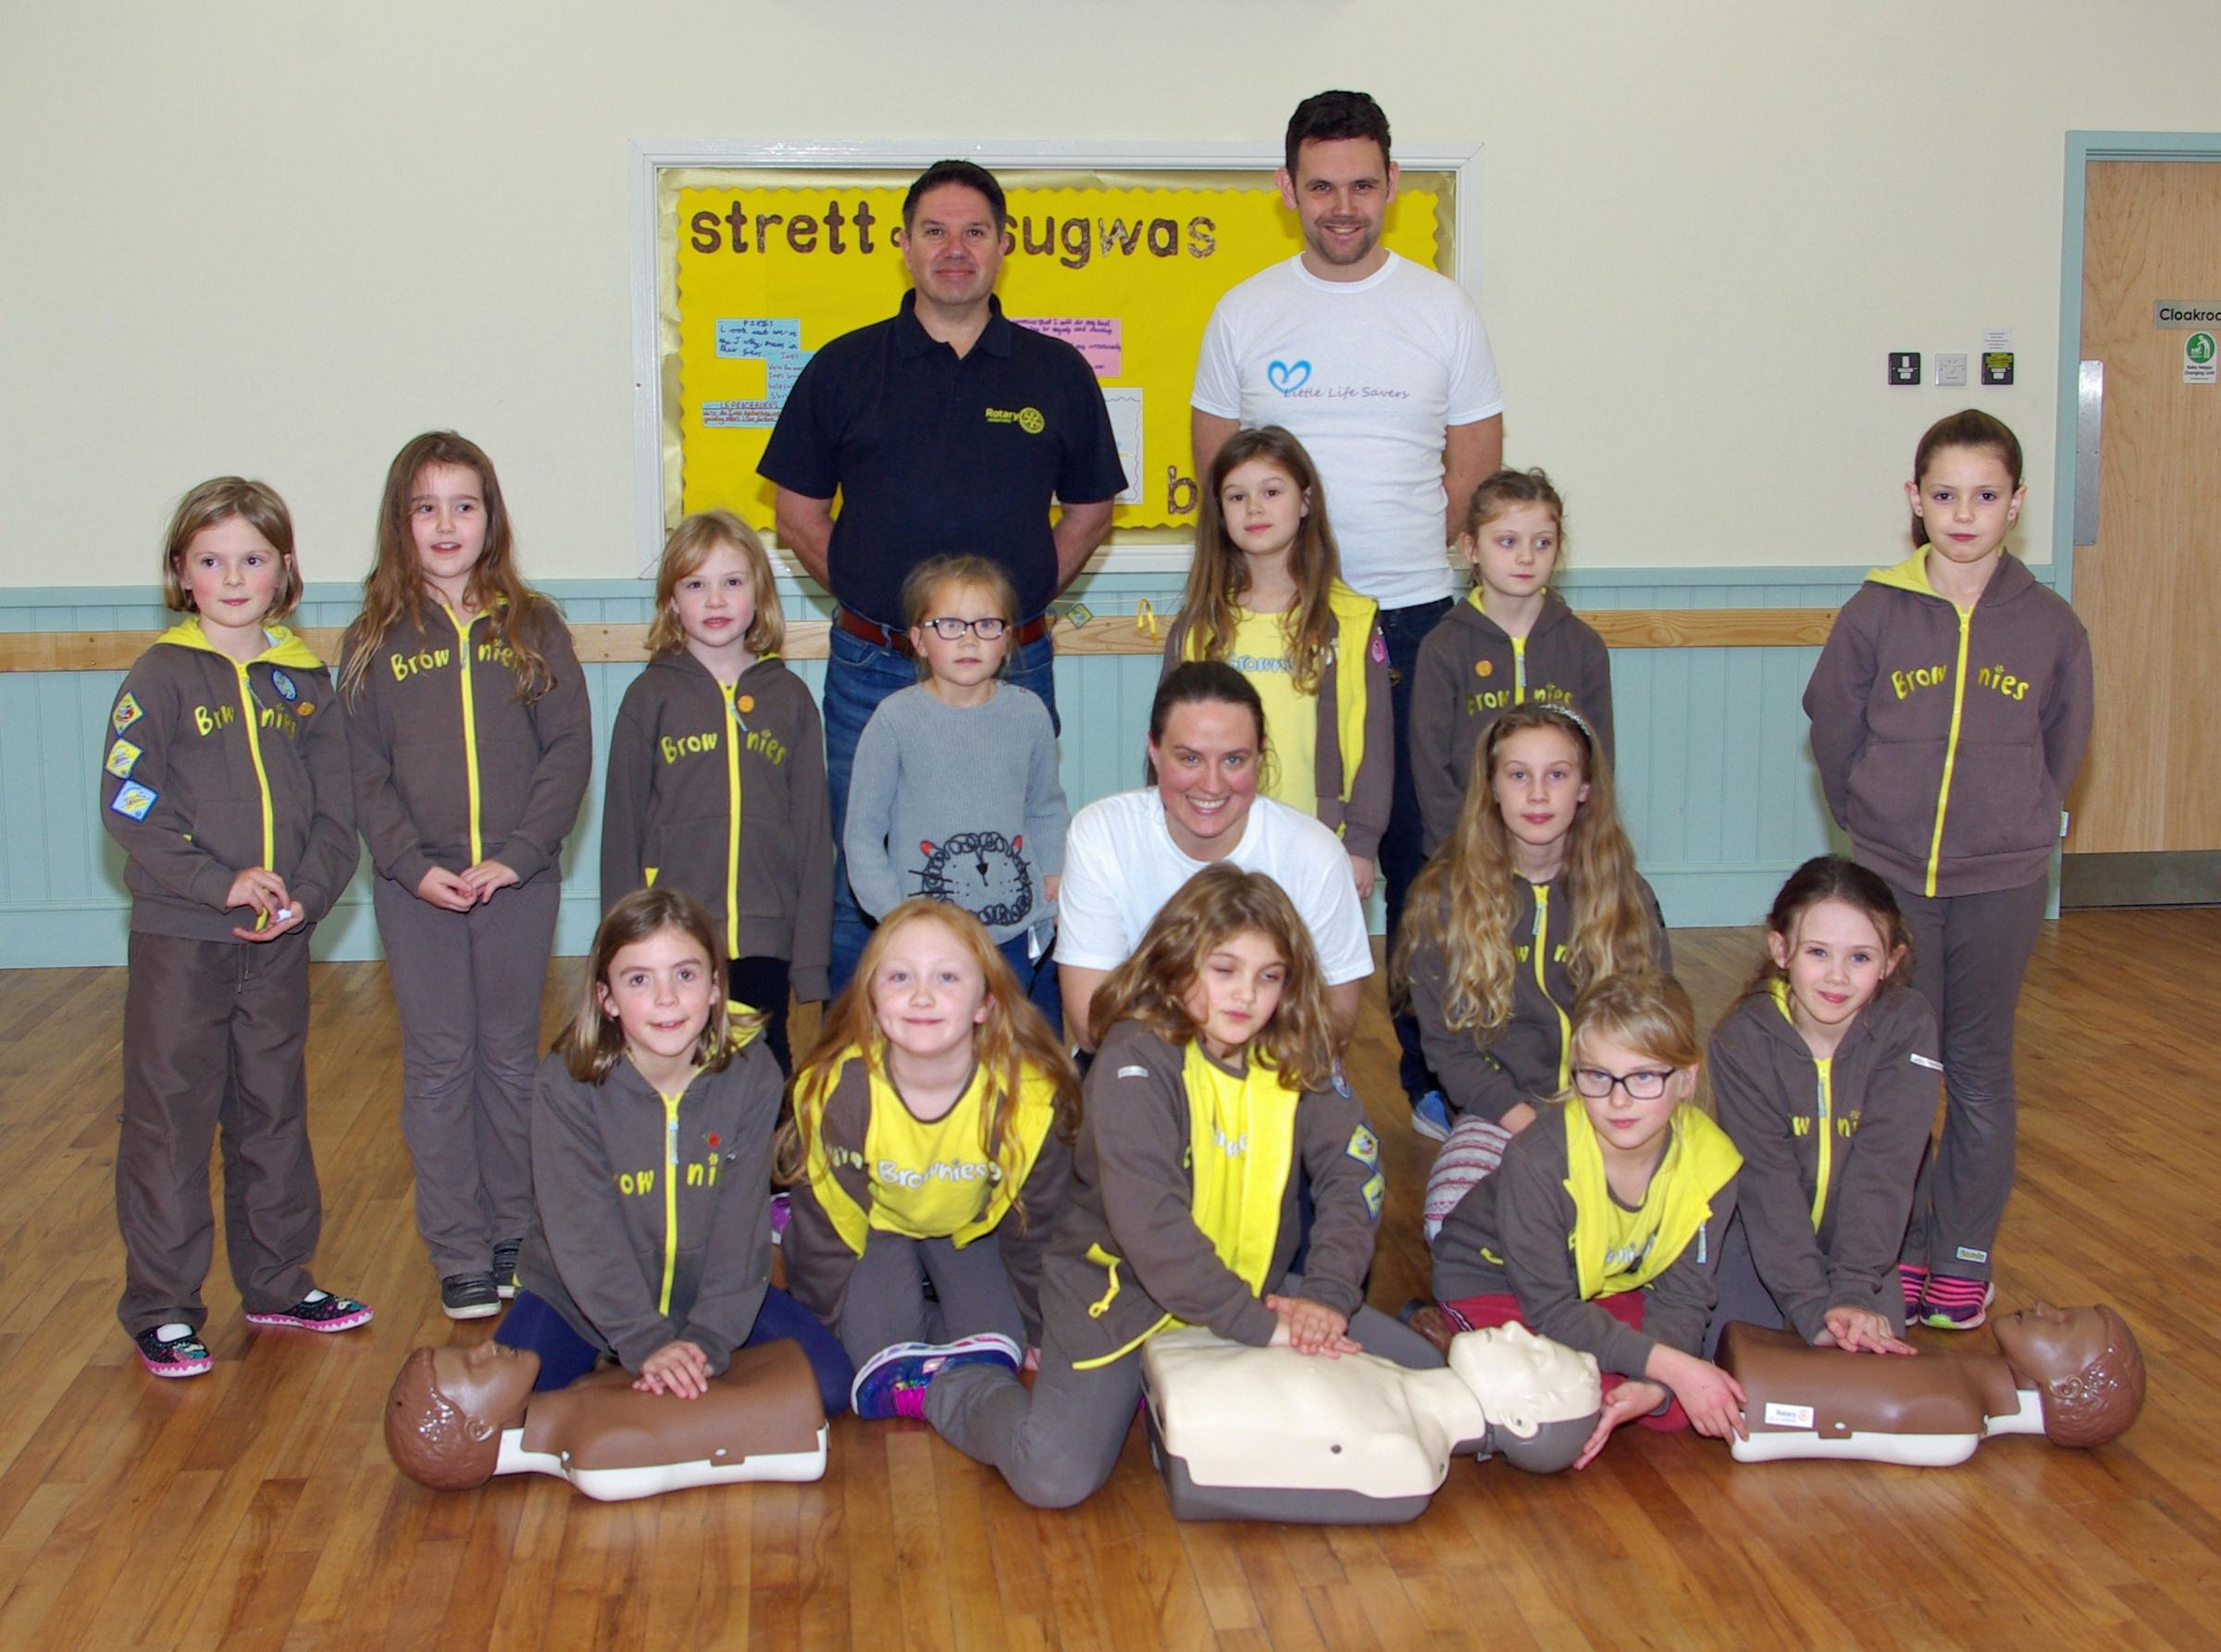 Dr Laura Handscombe gives Stretton Sugwas Brownies some lifesaving instruction at the launch of the Little Lifesavers programme at Stretton Sugwas Village Hall, watched by Dr Ryan O'Leary (back right) and City of Hereford Rotary Club's John Taylor